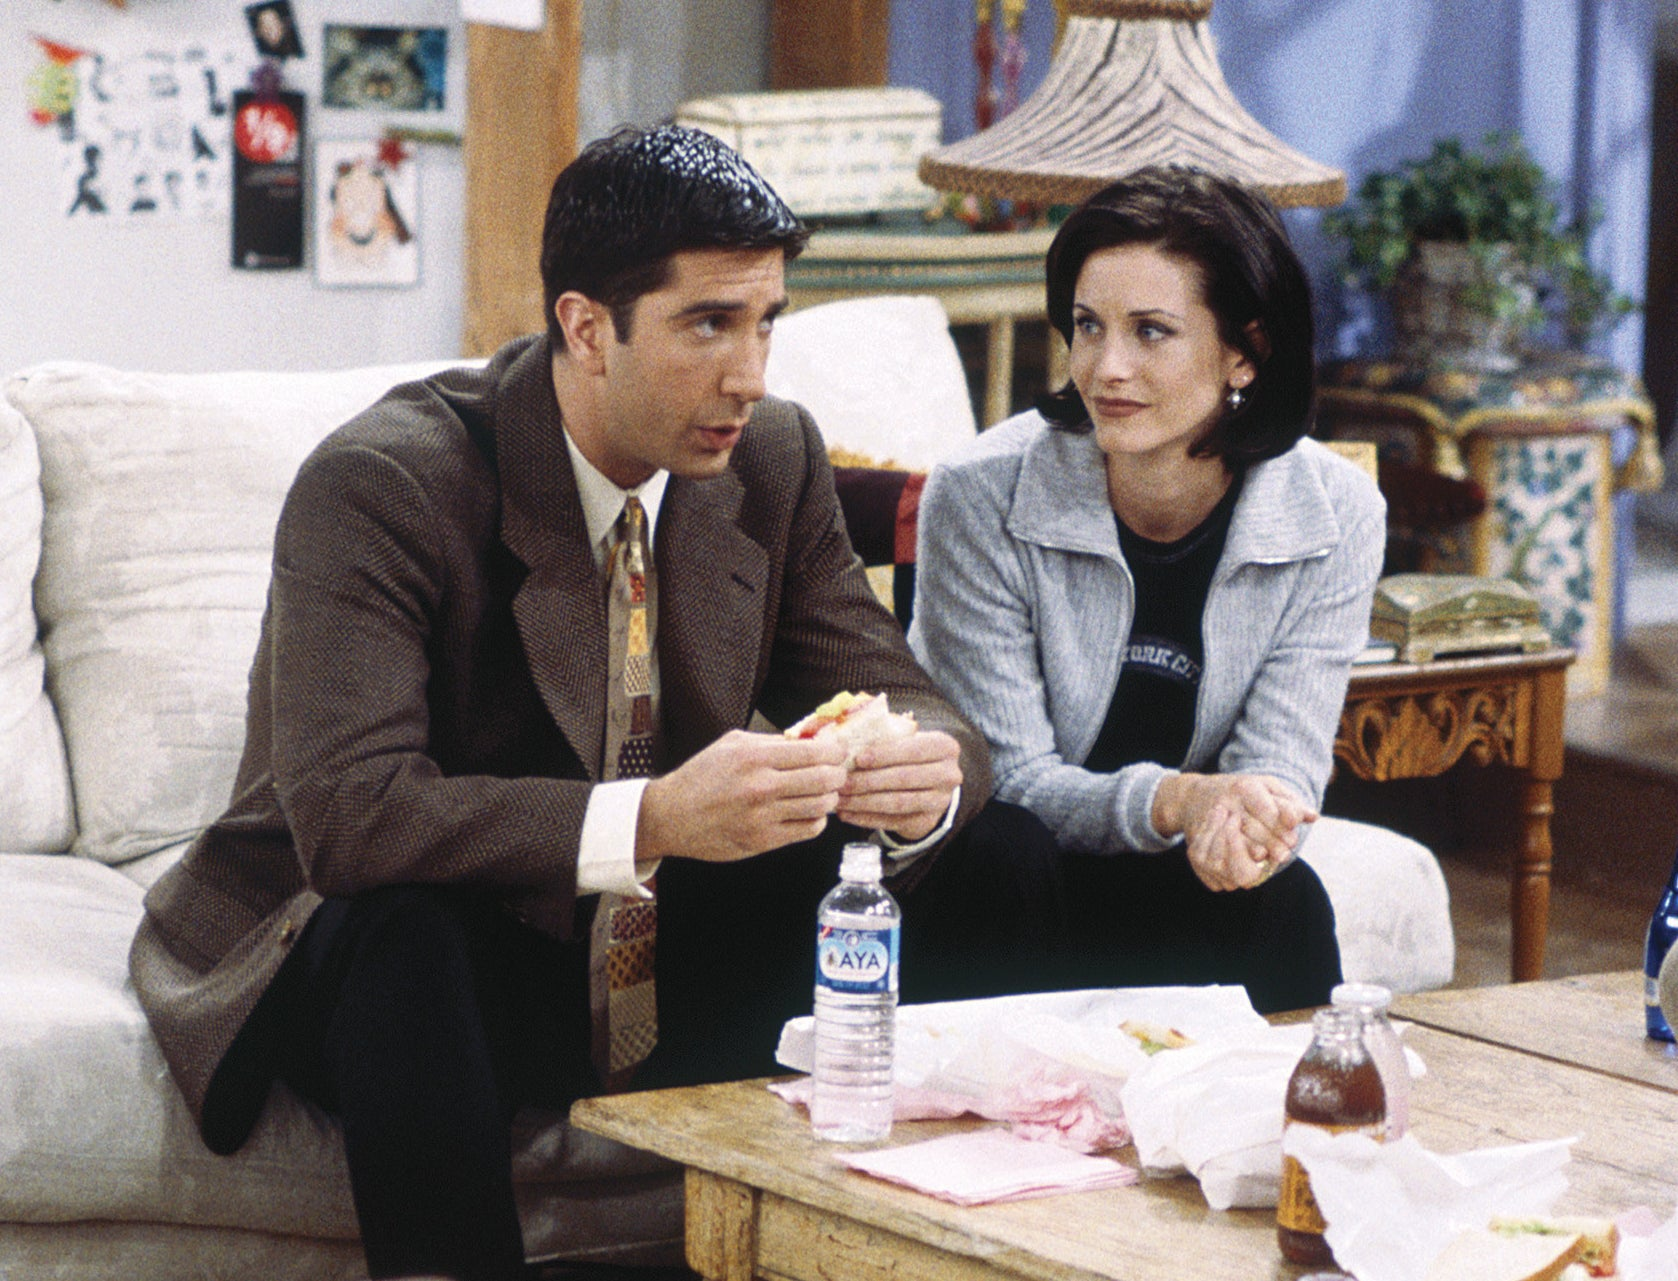 Ross sits on a couch while talking to MOnica